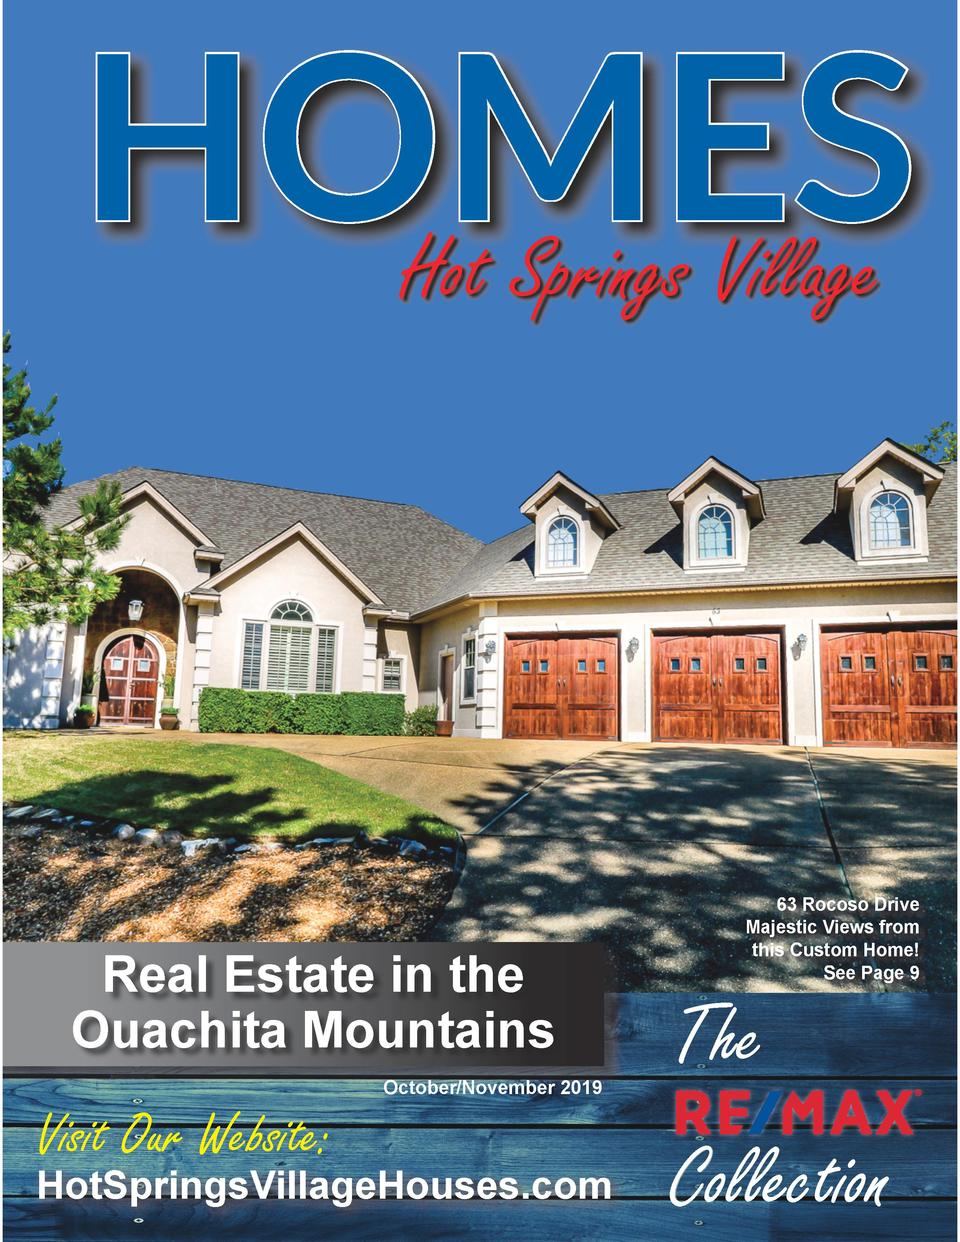 HOMES Hot Springs Village  Real Estate in the Ouachita Mountains October November 2019  Visit Our Website   HotSpringsVill...